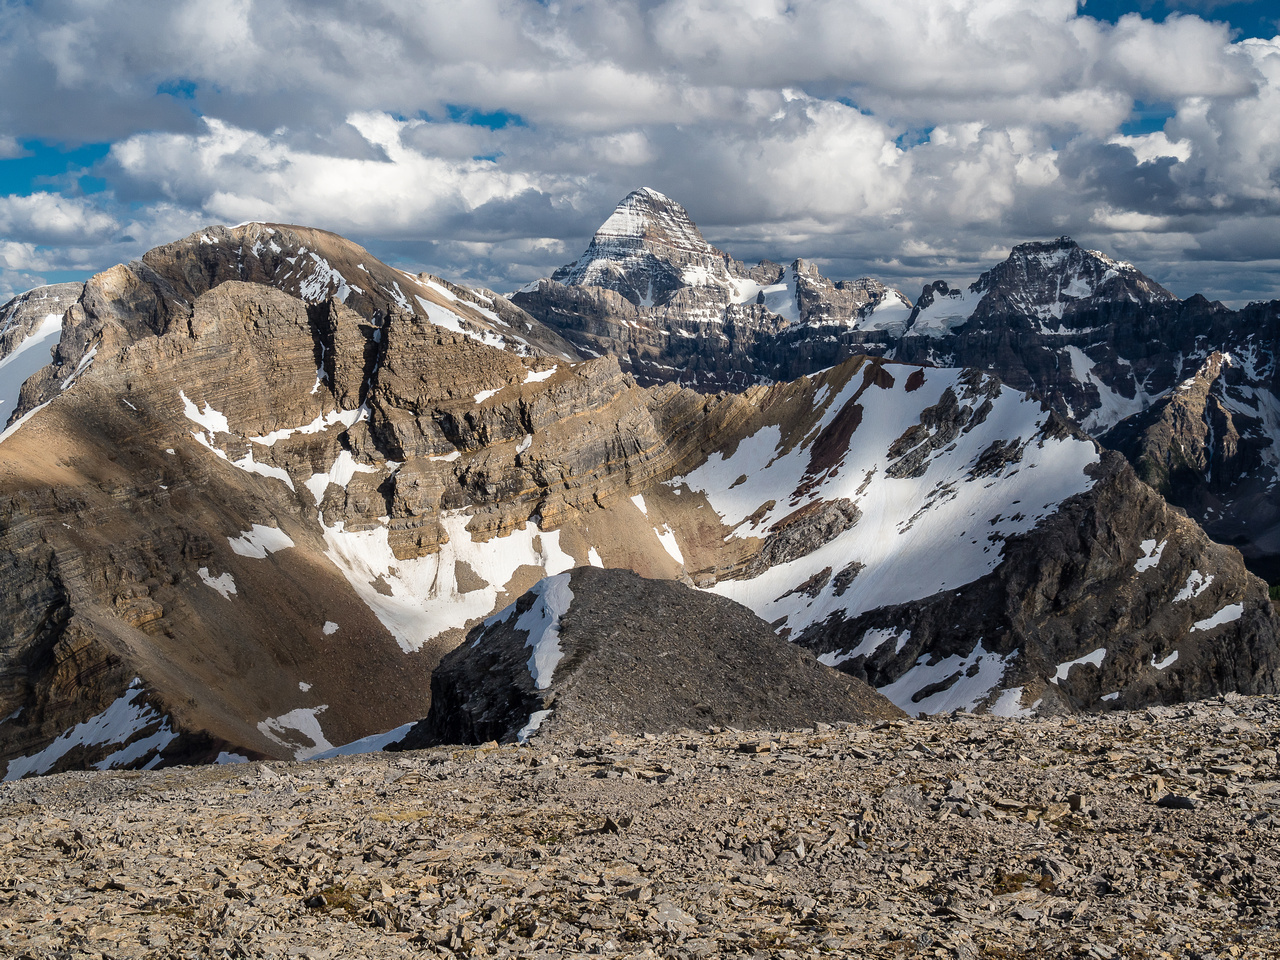 """Simpson Peak"" is barely visible in front of Nestor Peak at left. Assiniboine and The Marshall continue to steal the show as usual."